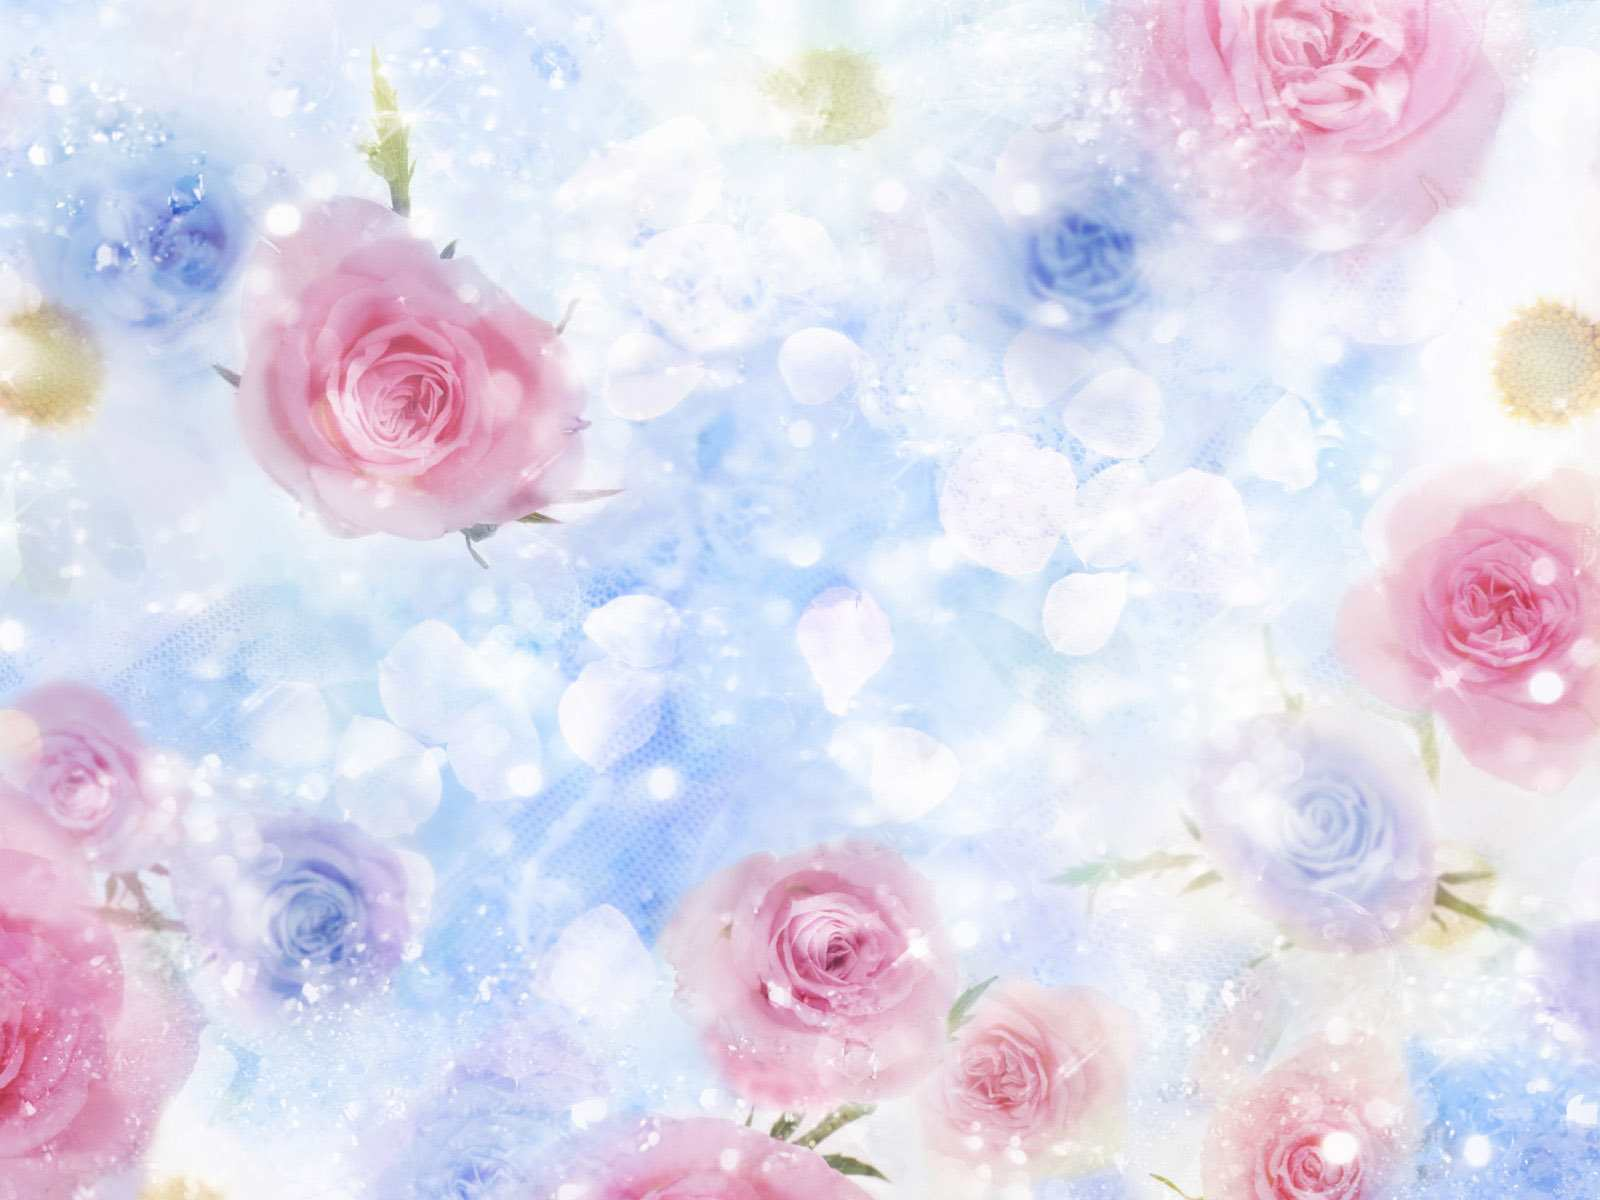 amazing flowers background 1600x1200 - photo #39